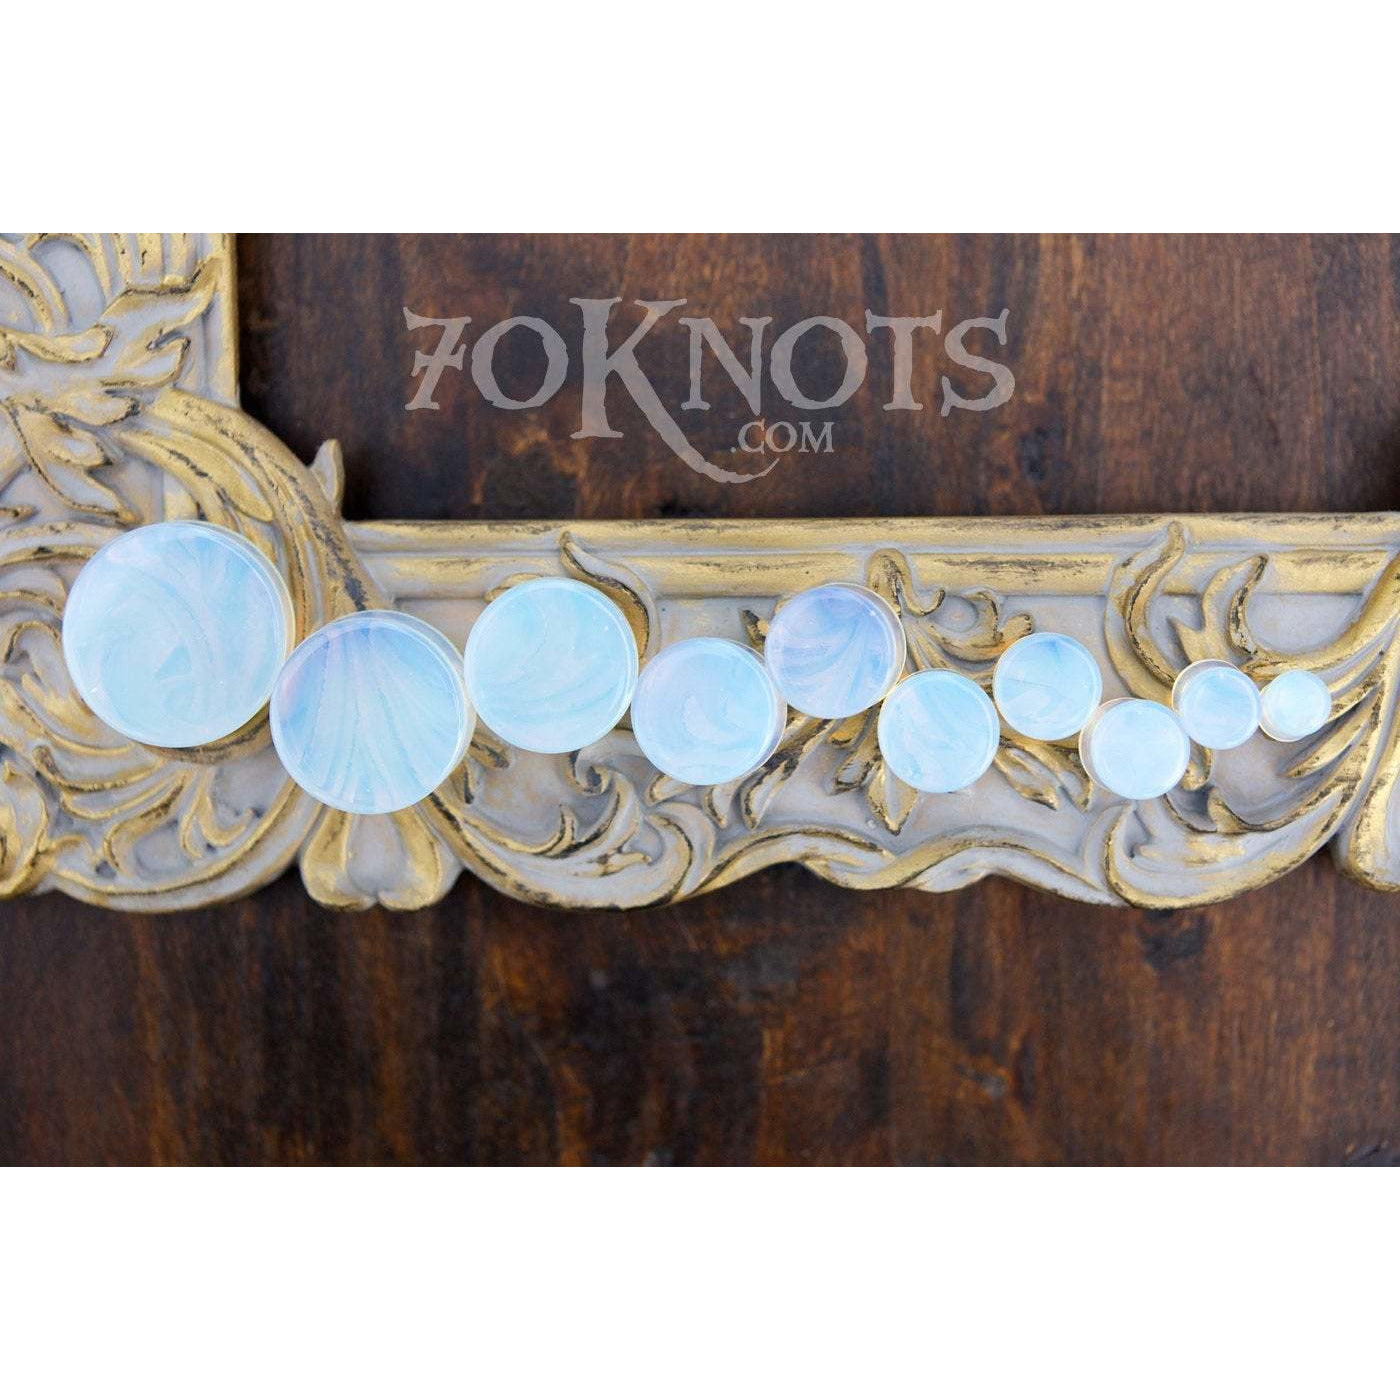 Opalite Double Flared Plugs, Pair - 70 Knots